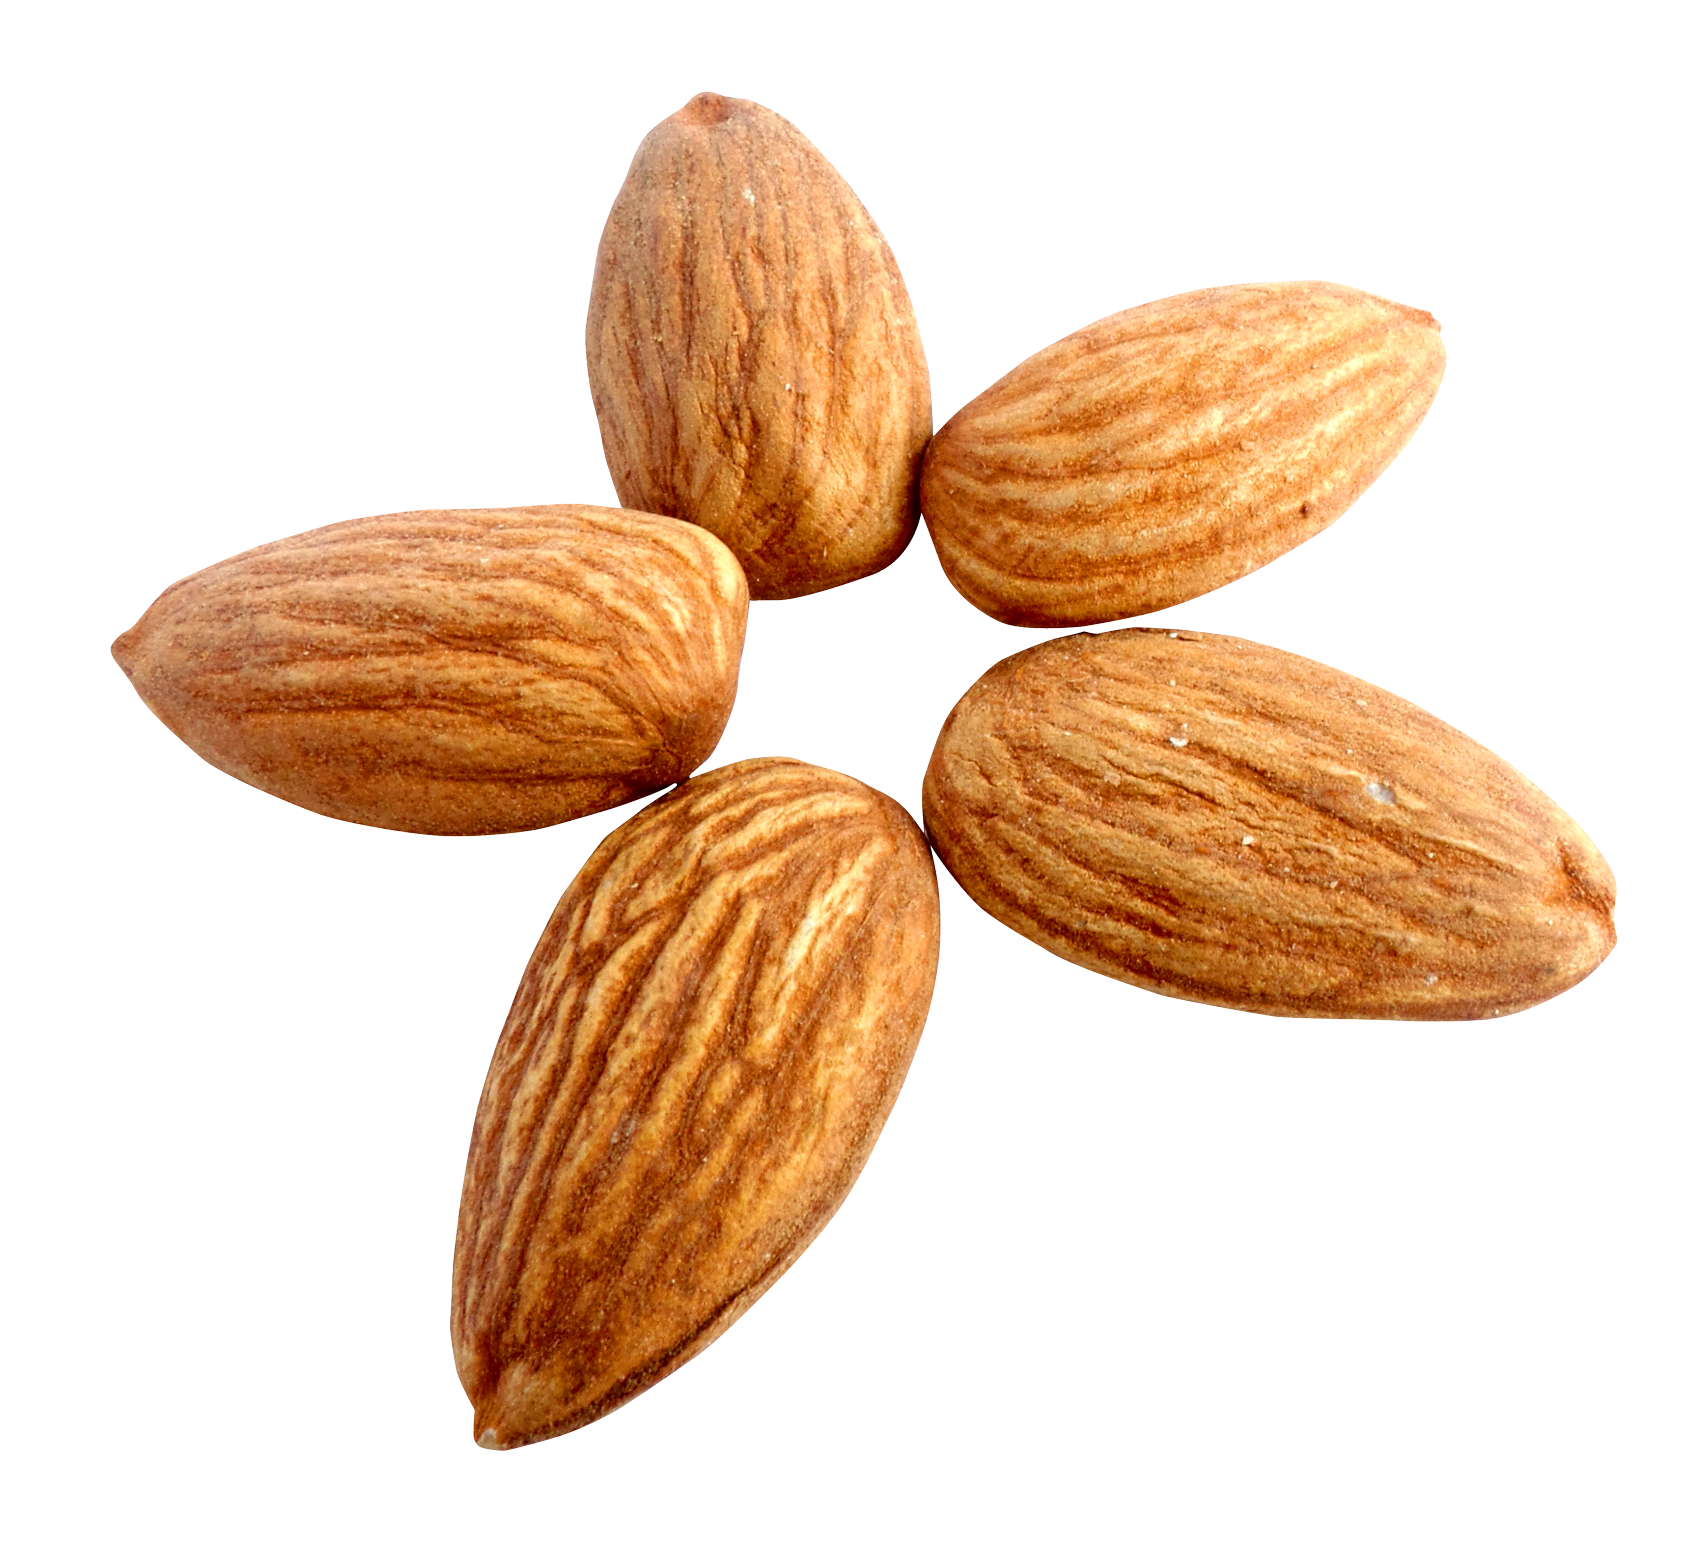 Almond Transparent Background.